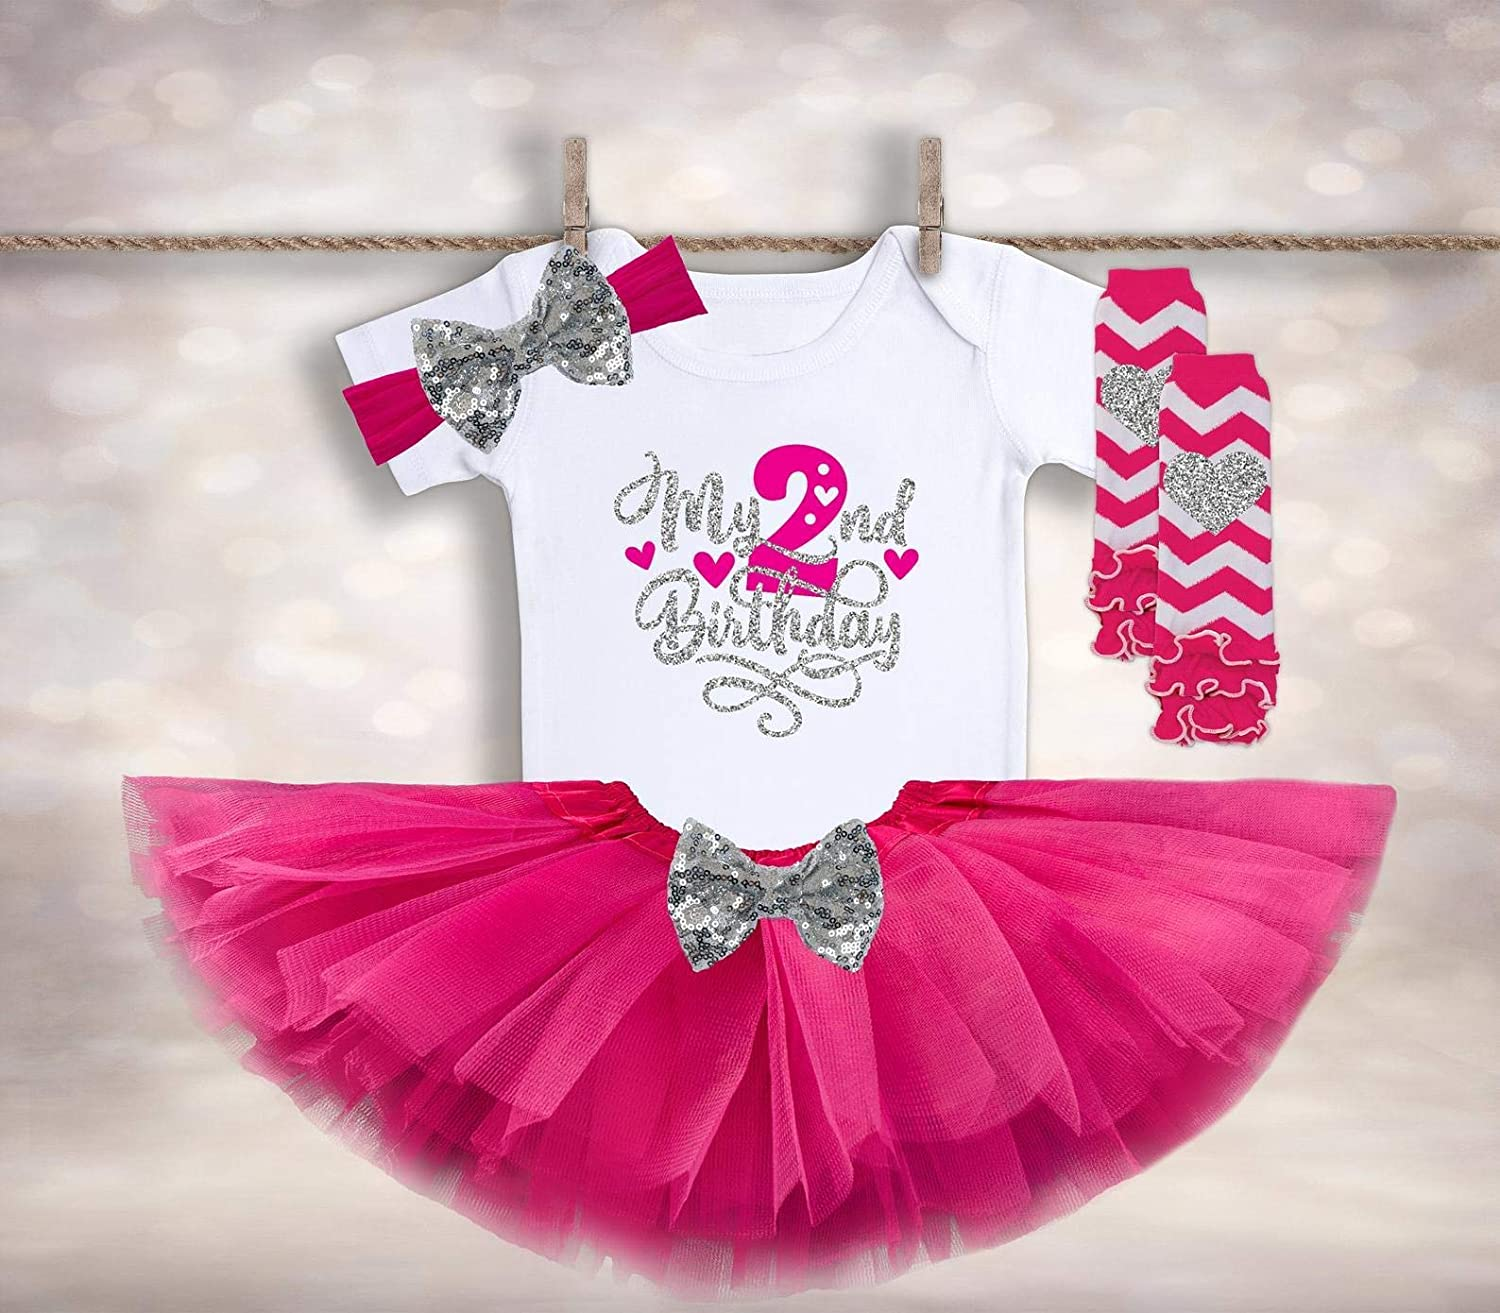 2nd birthday shirt birthday top 2nd birthday outfit birthday baby grow 2nd birthday tutu set second birthday party outfit